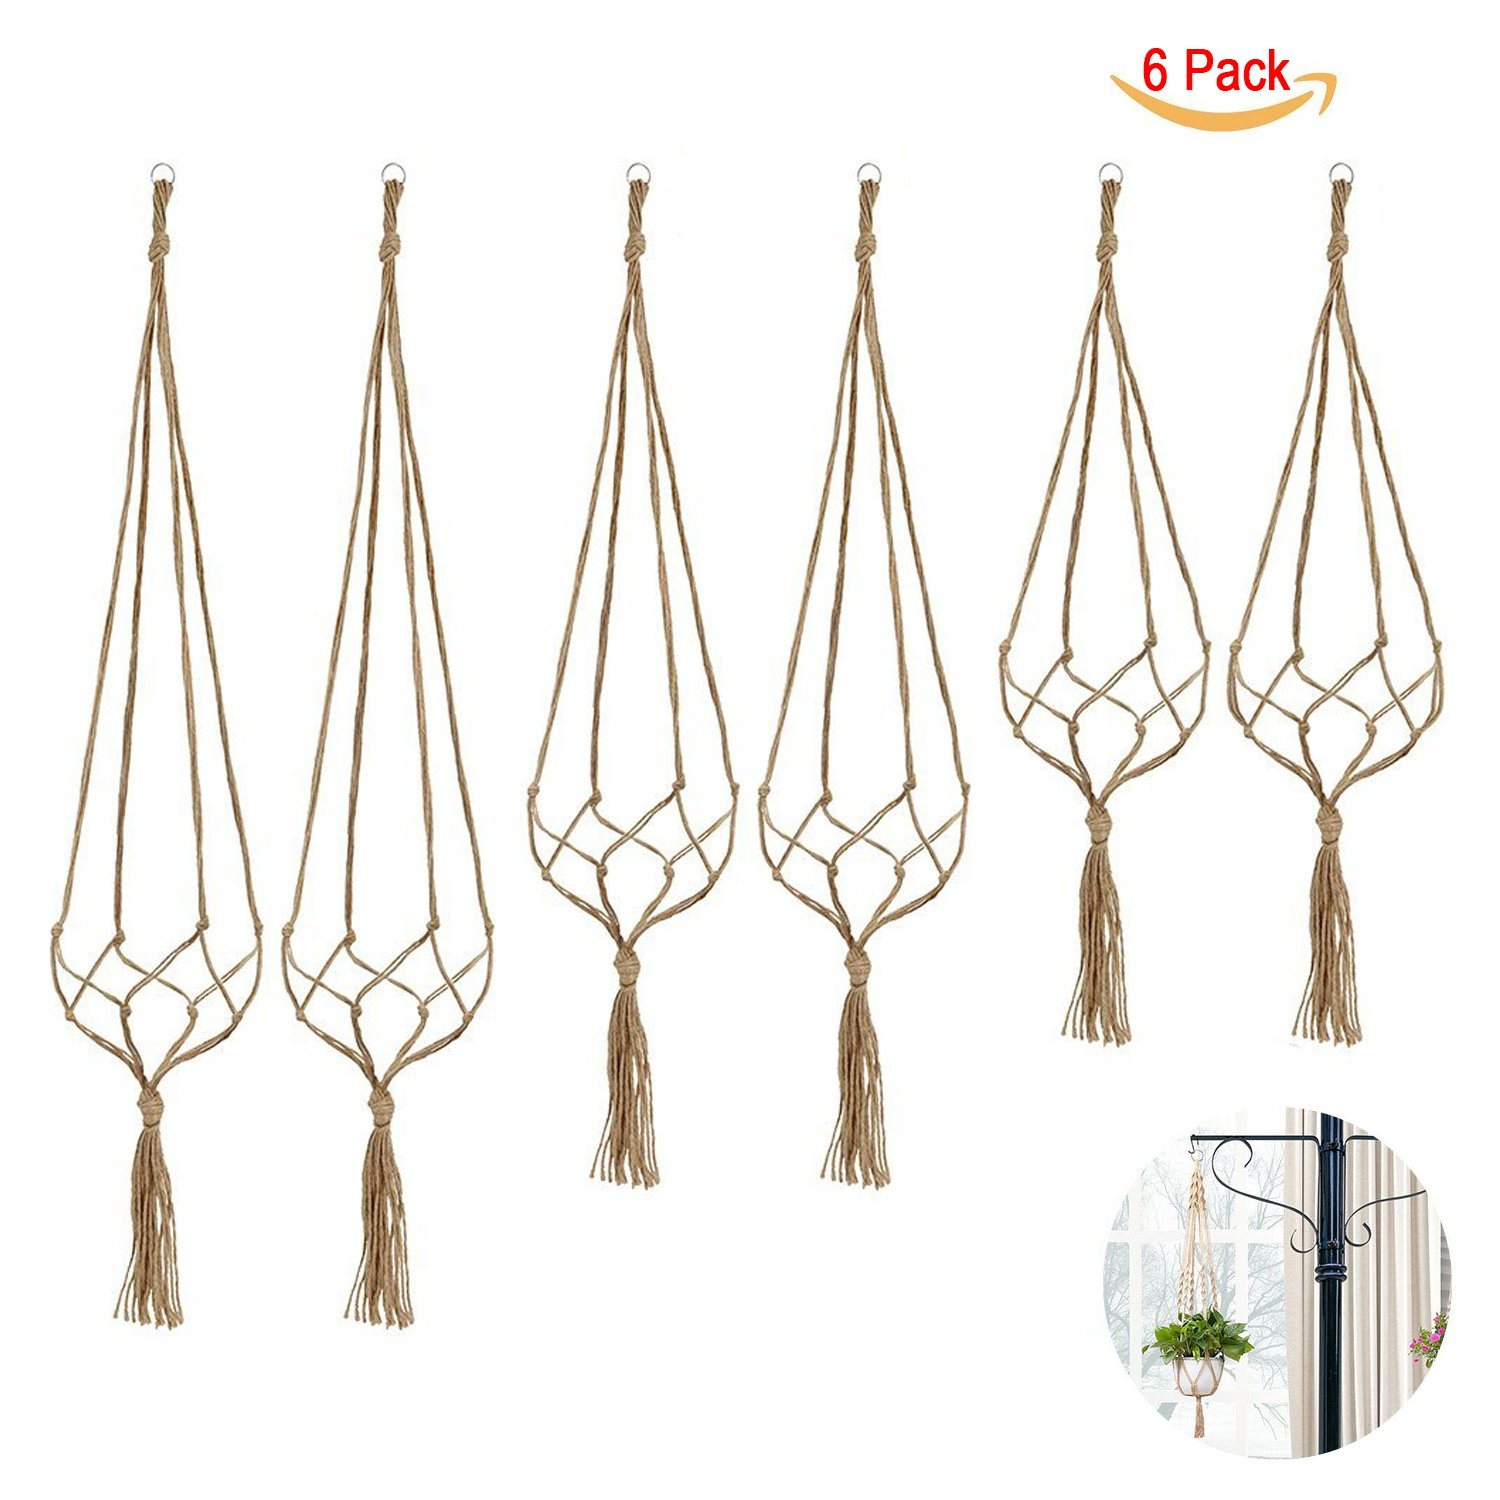 6 Pack Indoor Hanging Planter Holder, Plant Hanger, 3 Different Sizes (each size 2 pack) by Wendy Direct